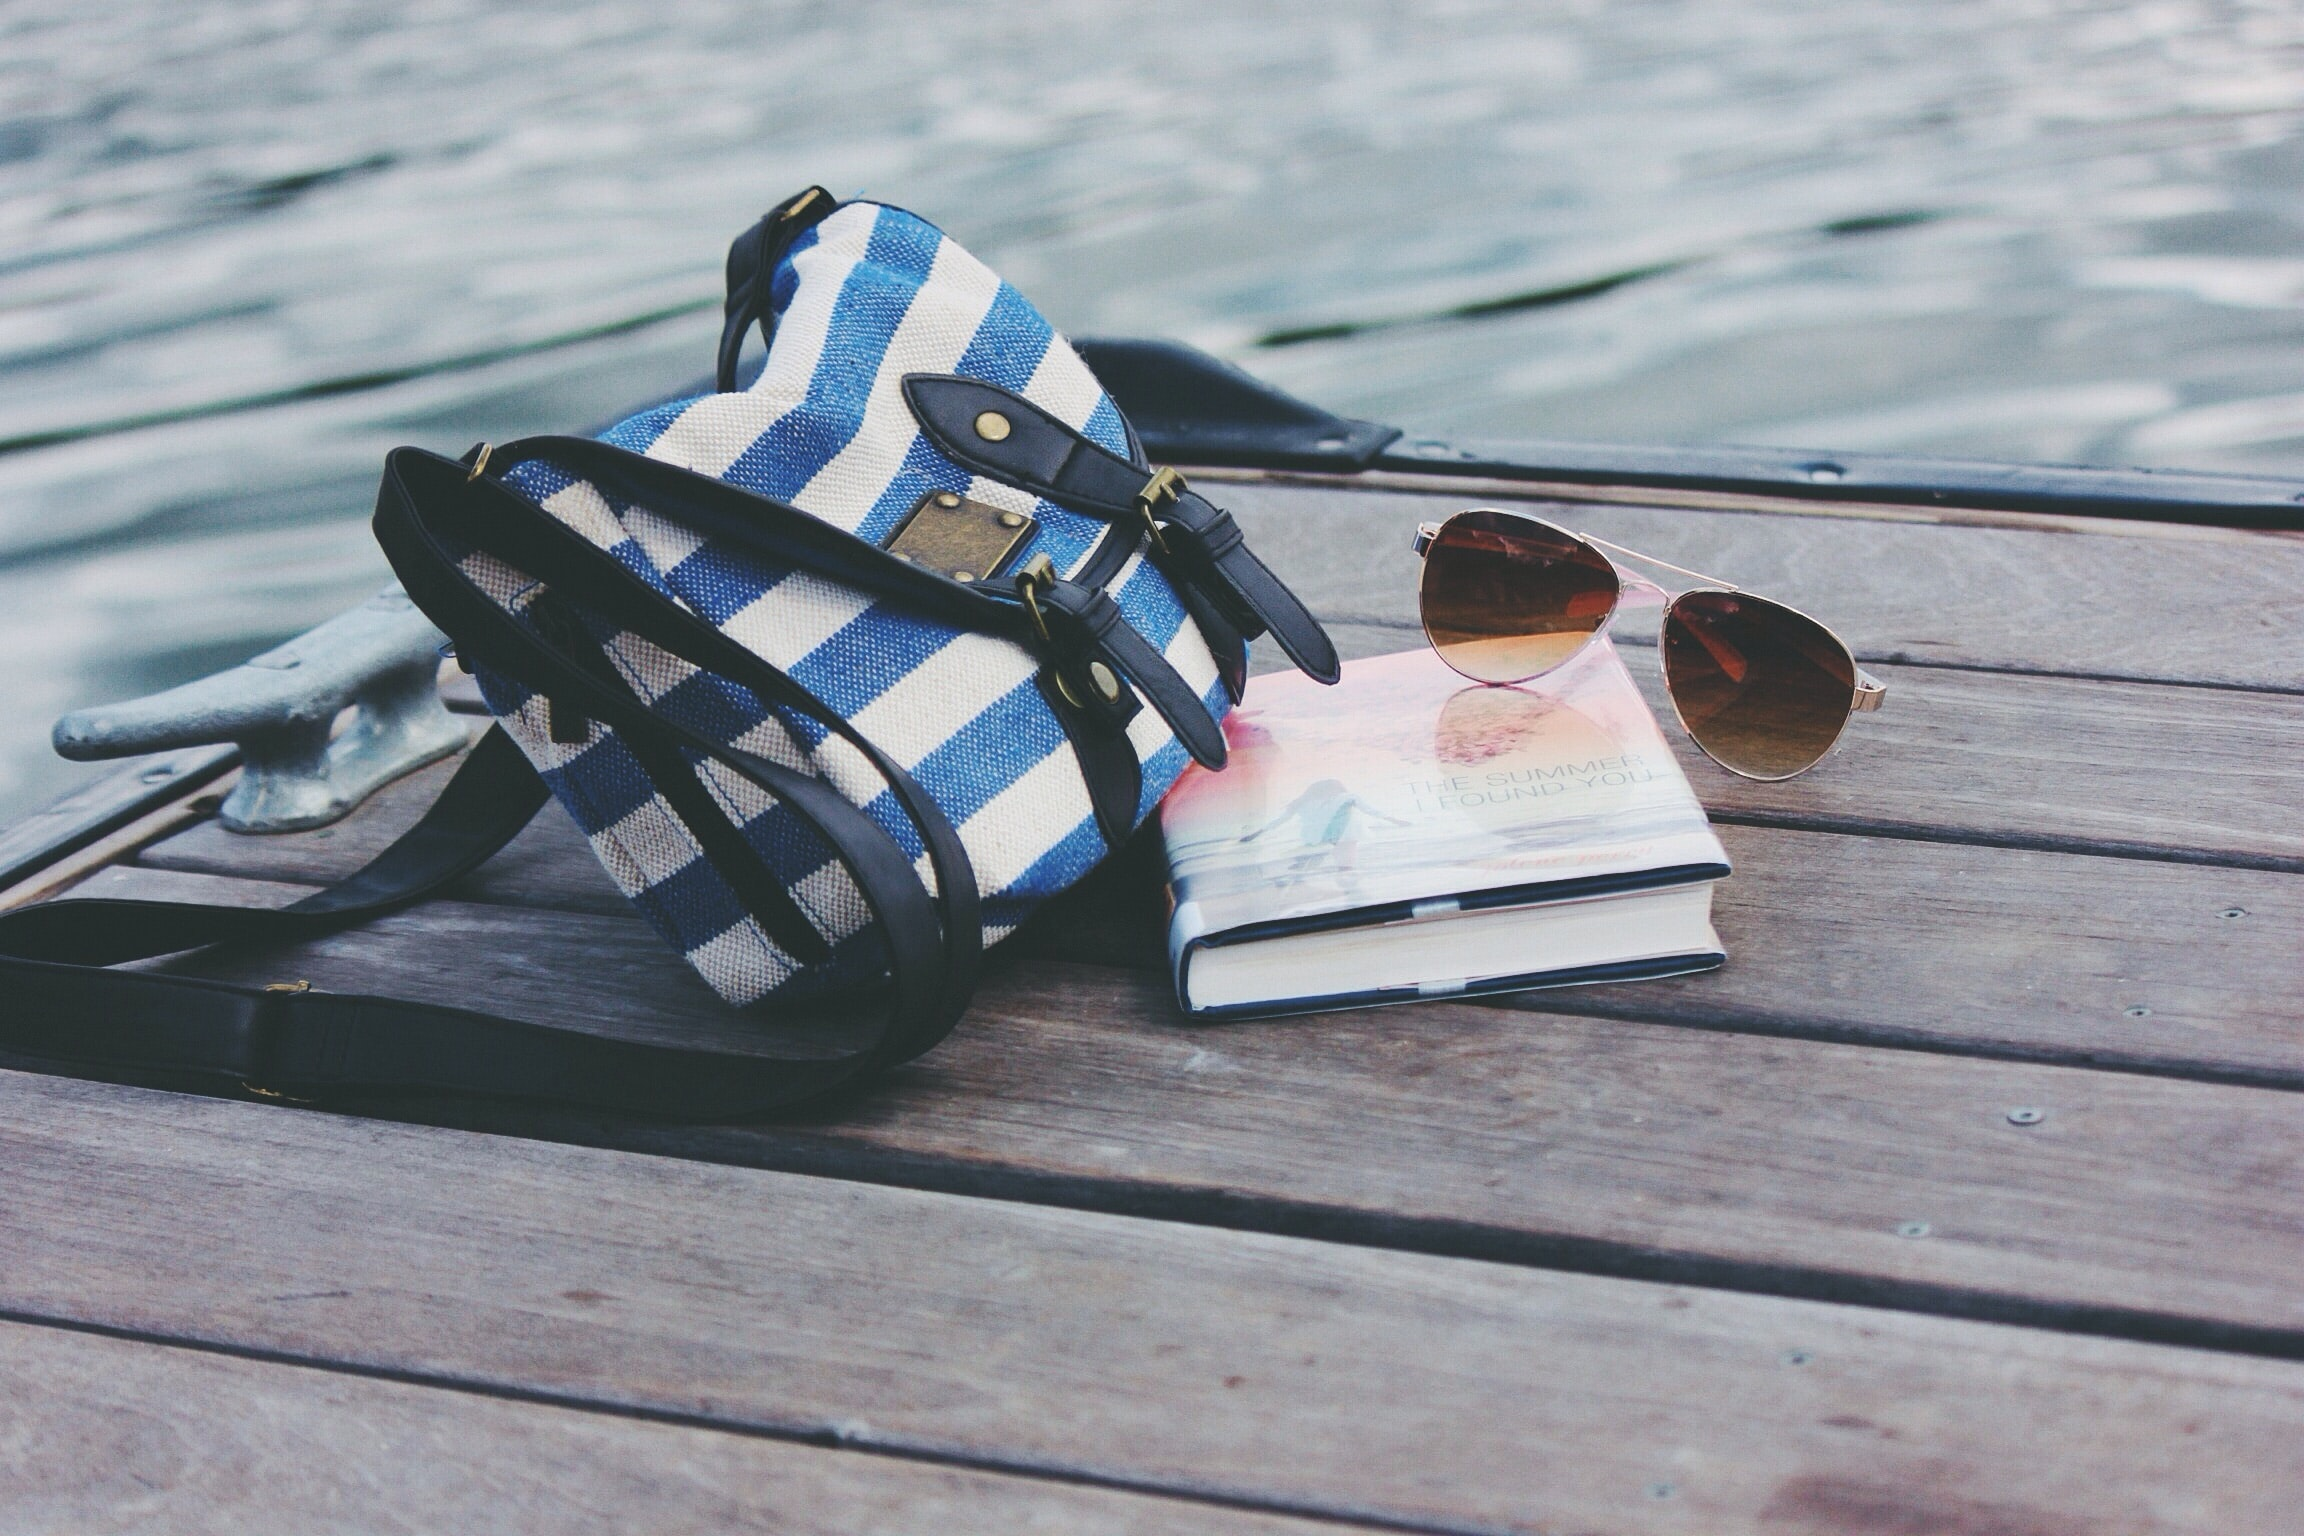 blue and white striped crossbody bag near book and sunglasses on sea dock during daytime